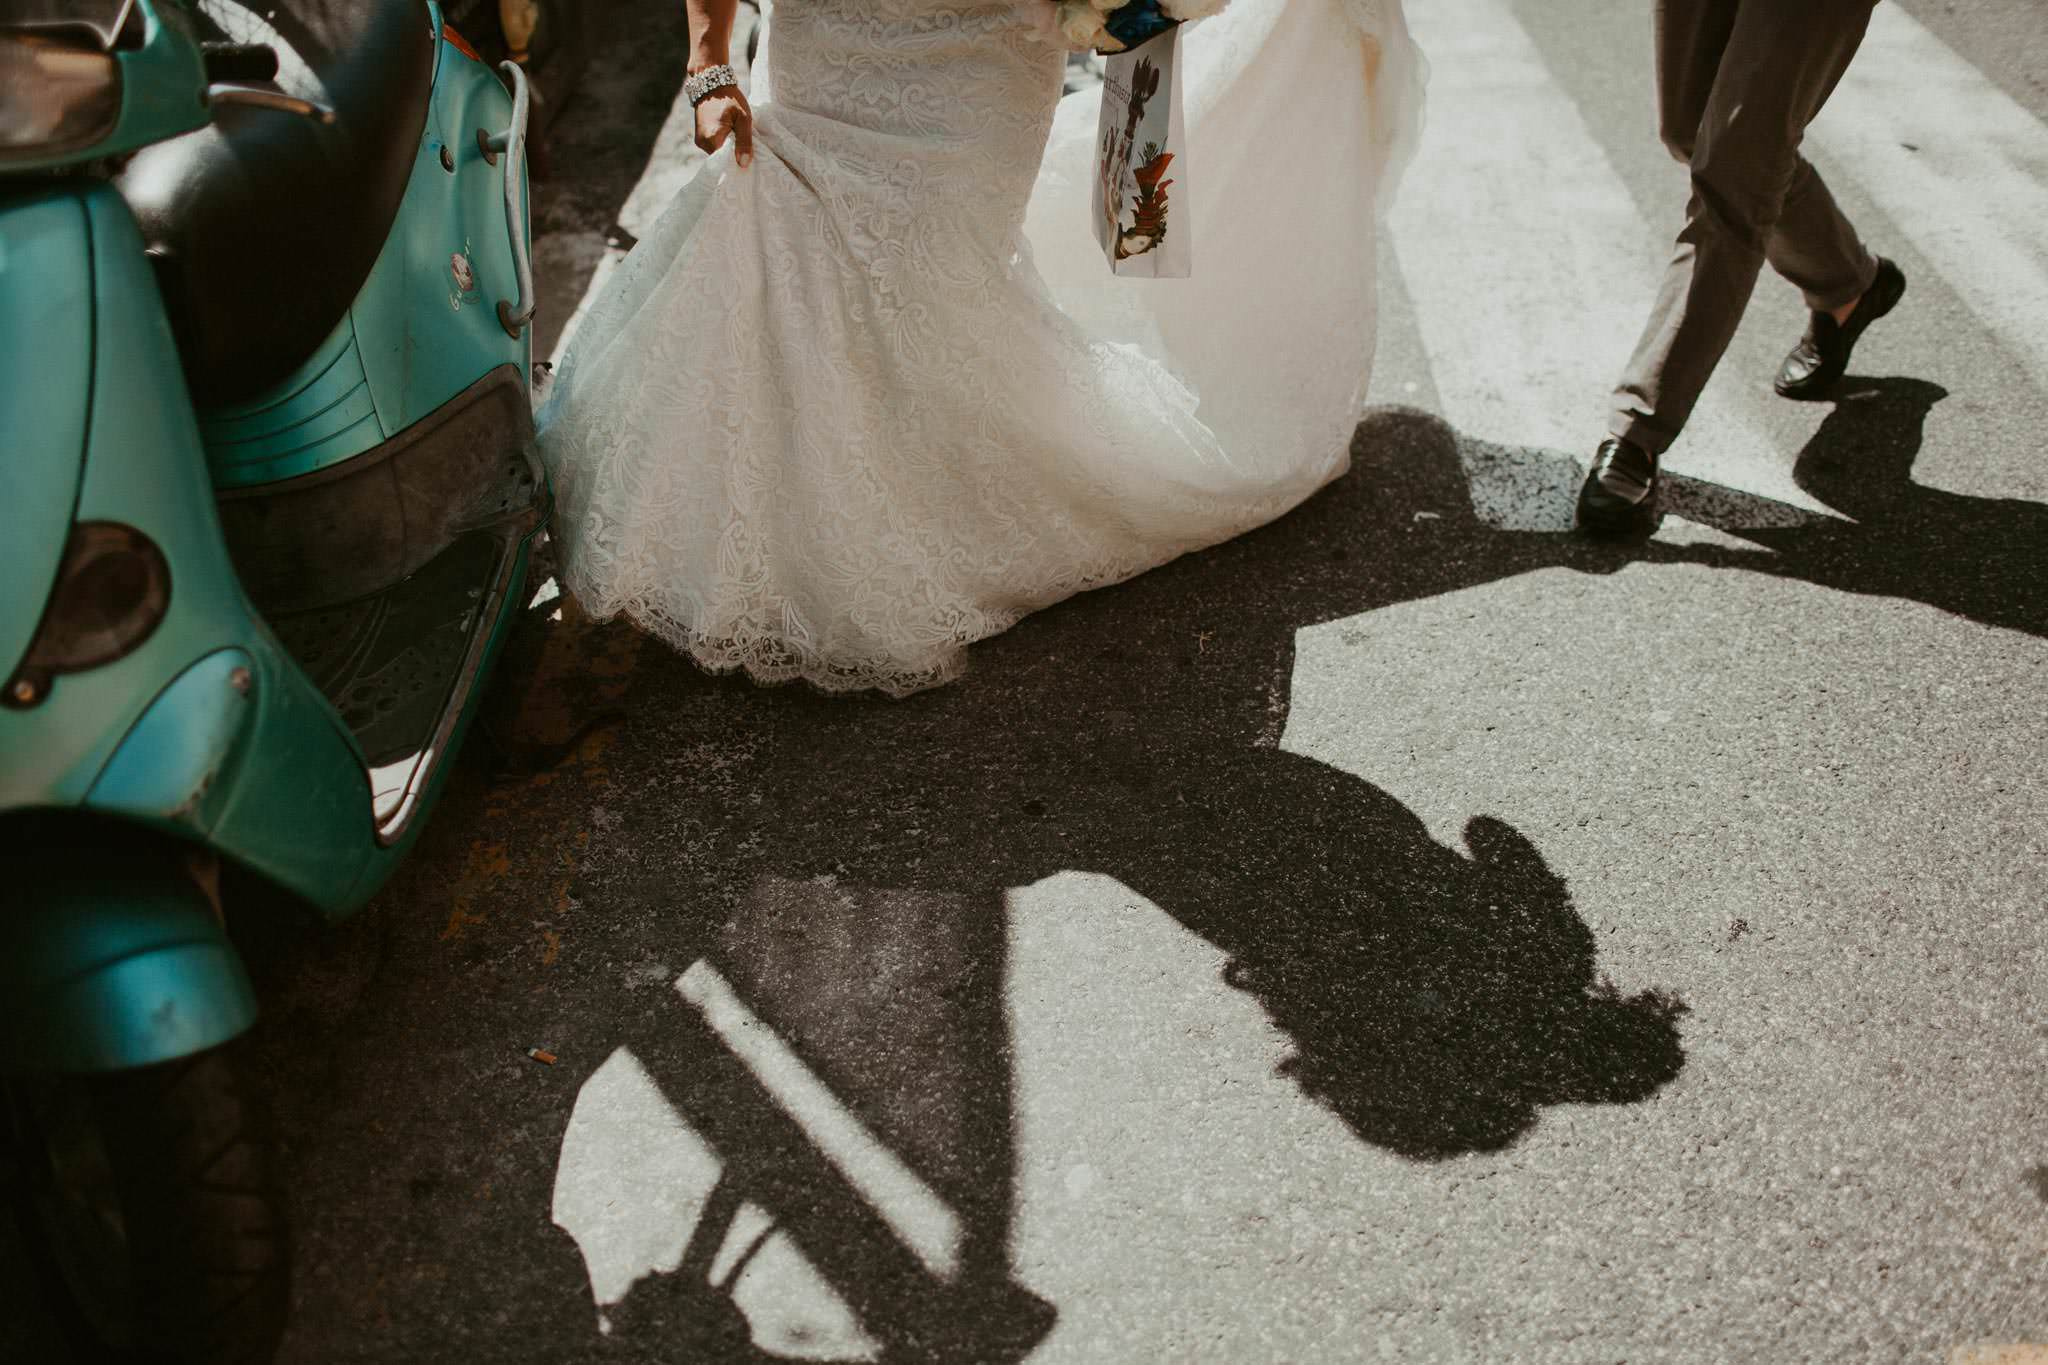 positano-wedding-photographer-032